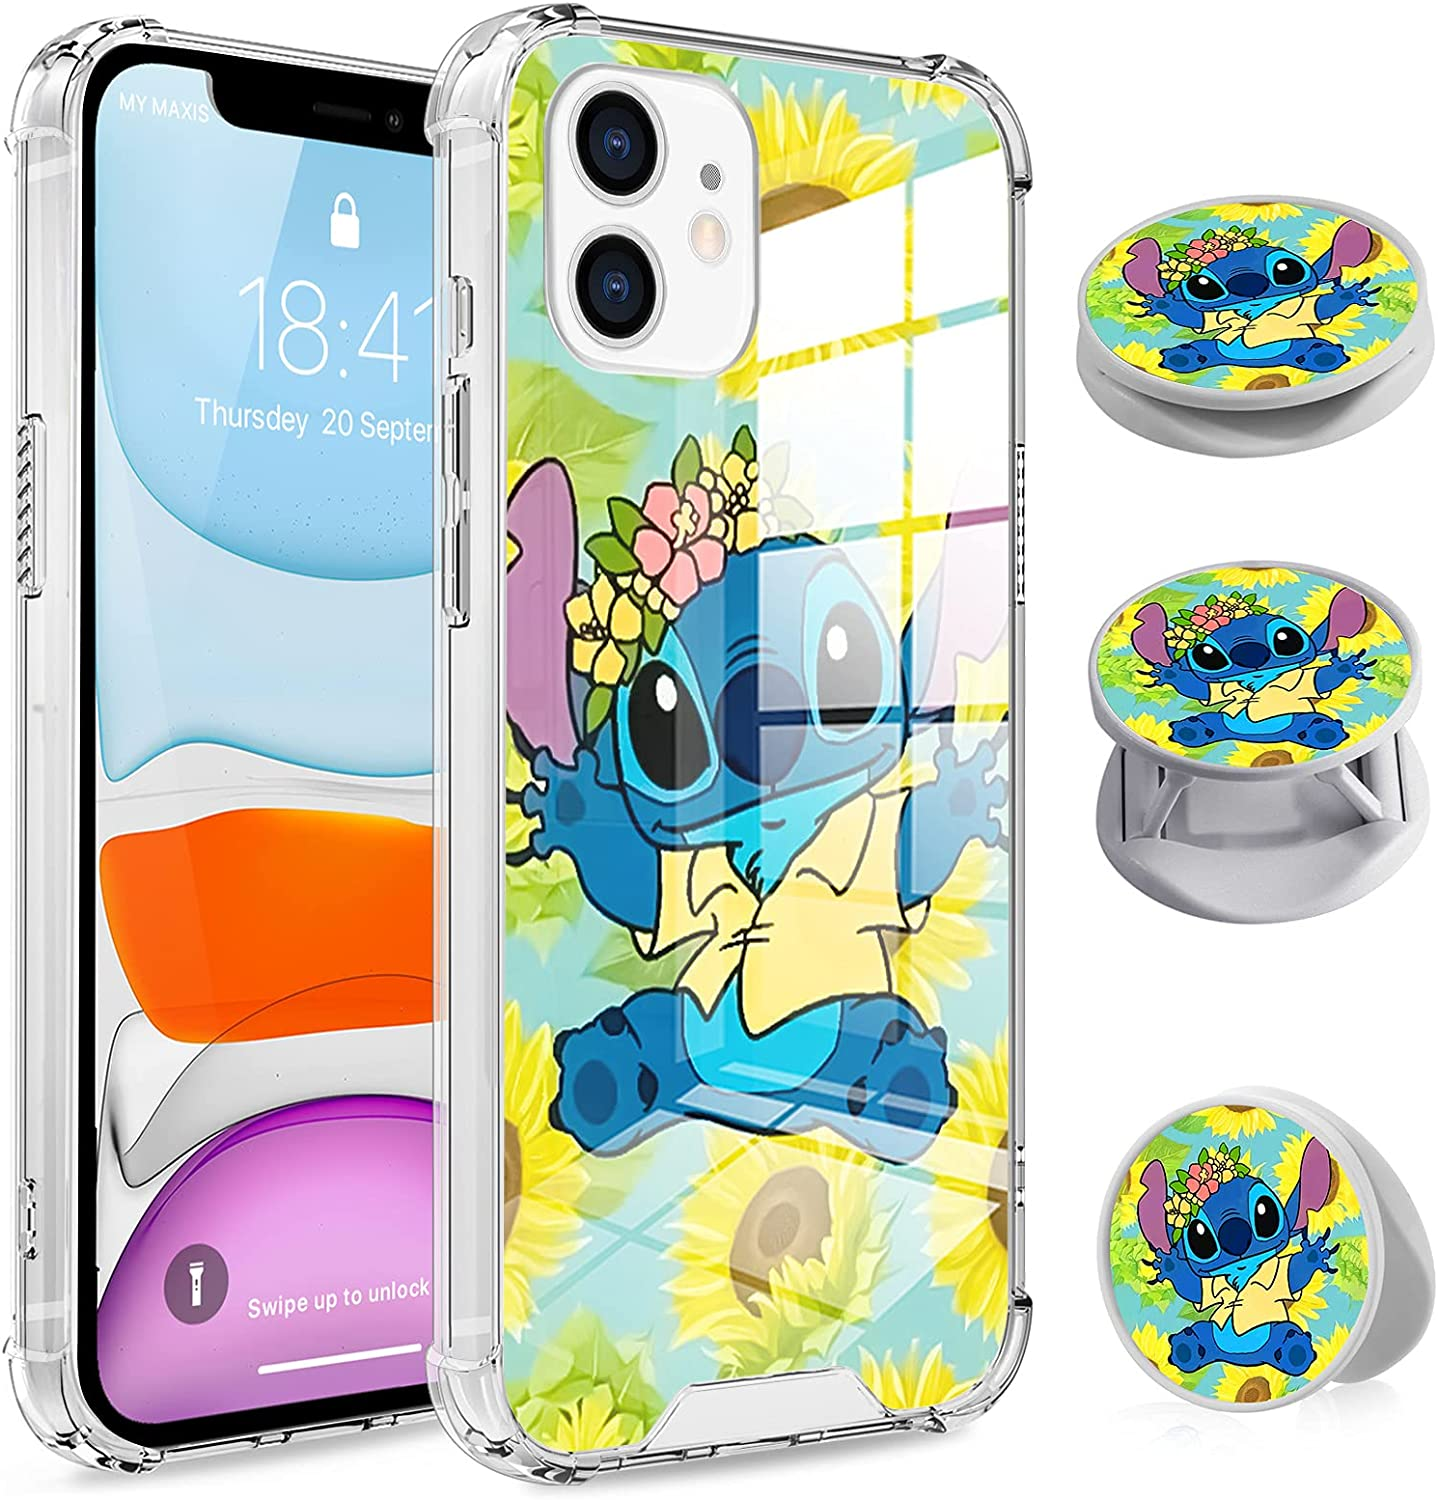 Compatible with iPhone 11 Sunflower&Stitch Case, Clear Anti-Scratch Anti-Shock TPU Bumper Protective Cover for iPhone 11 6.1